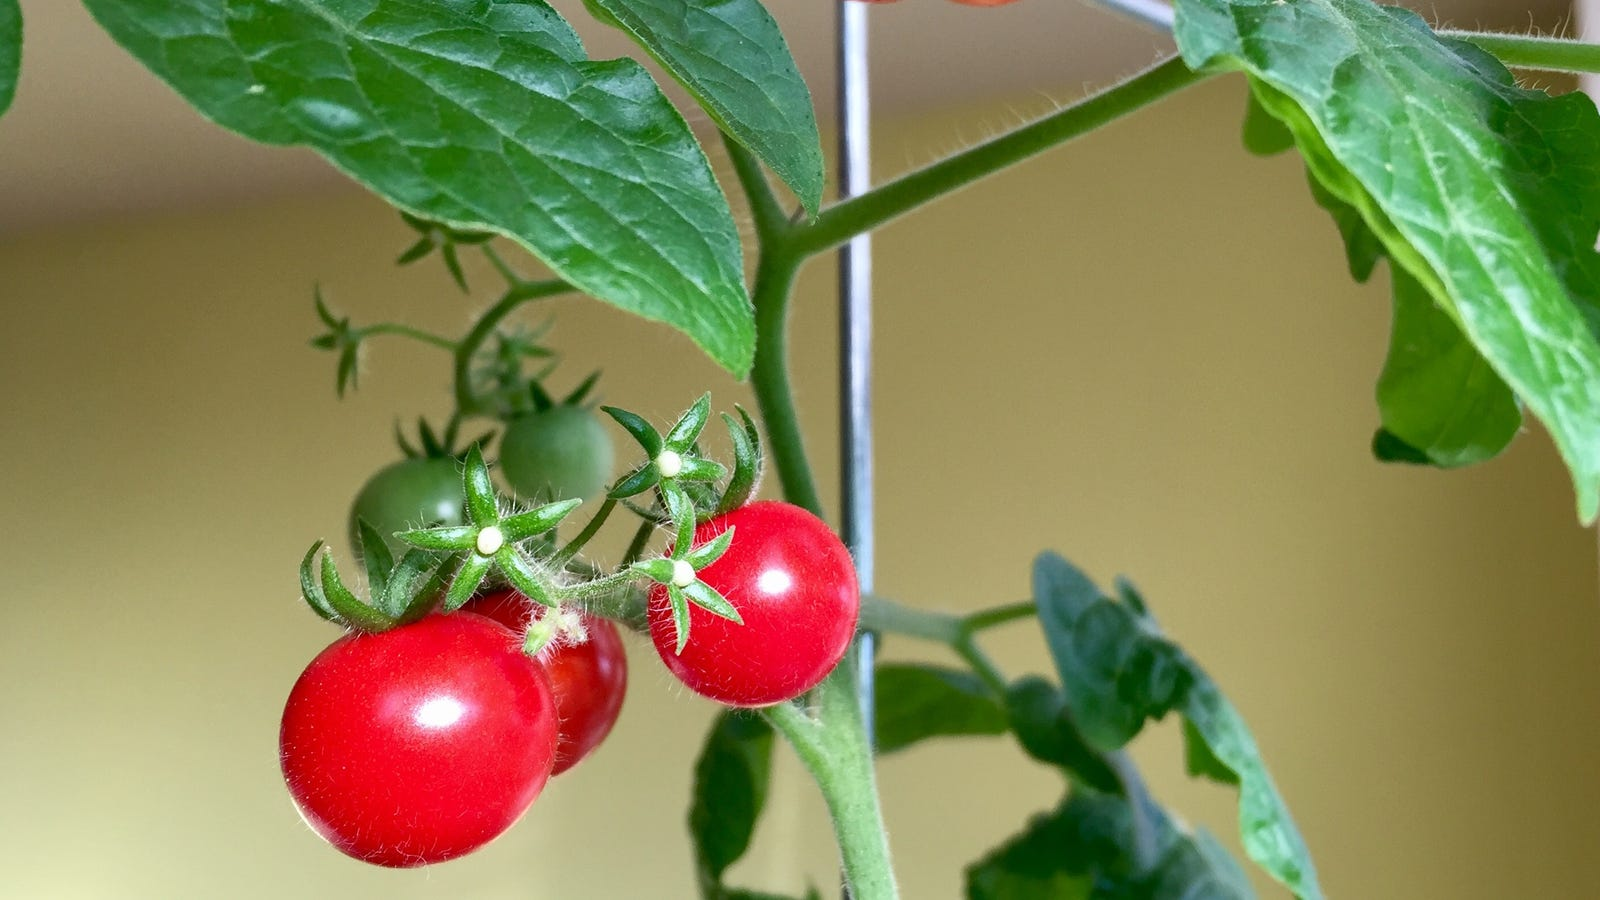 Grow Tomatoes From The Seeds Of The Tomato You Re Eating